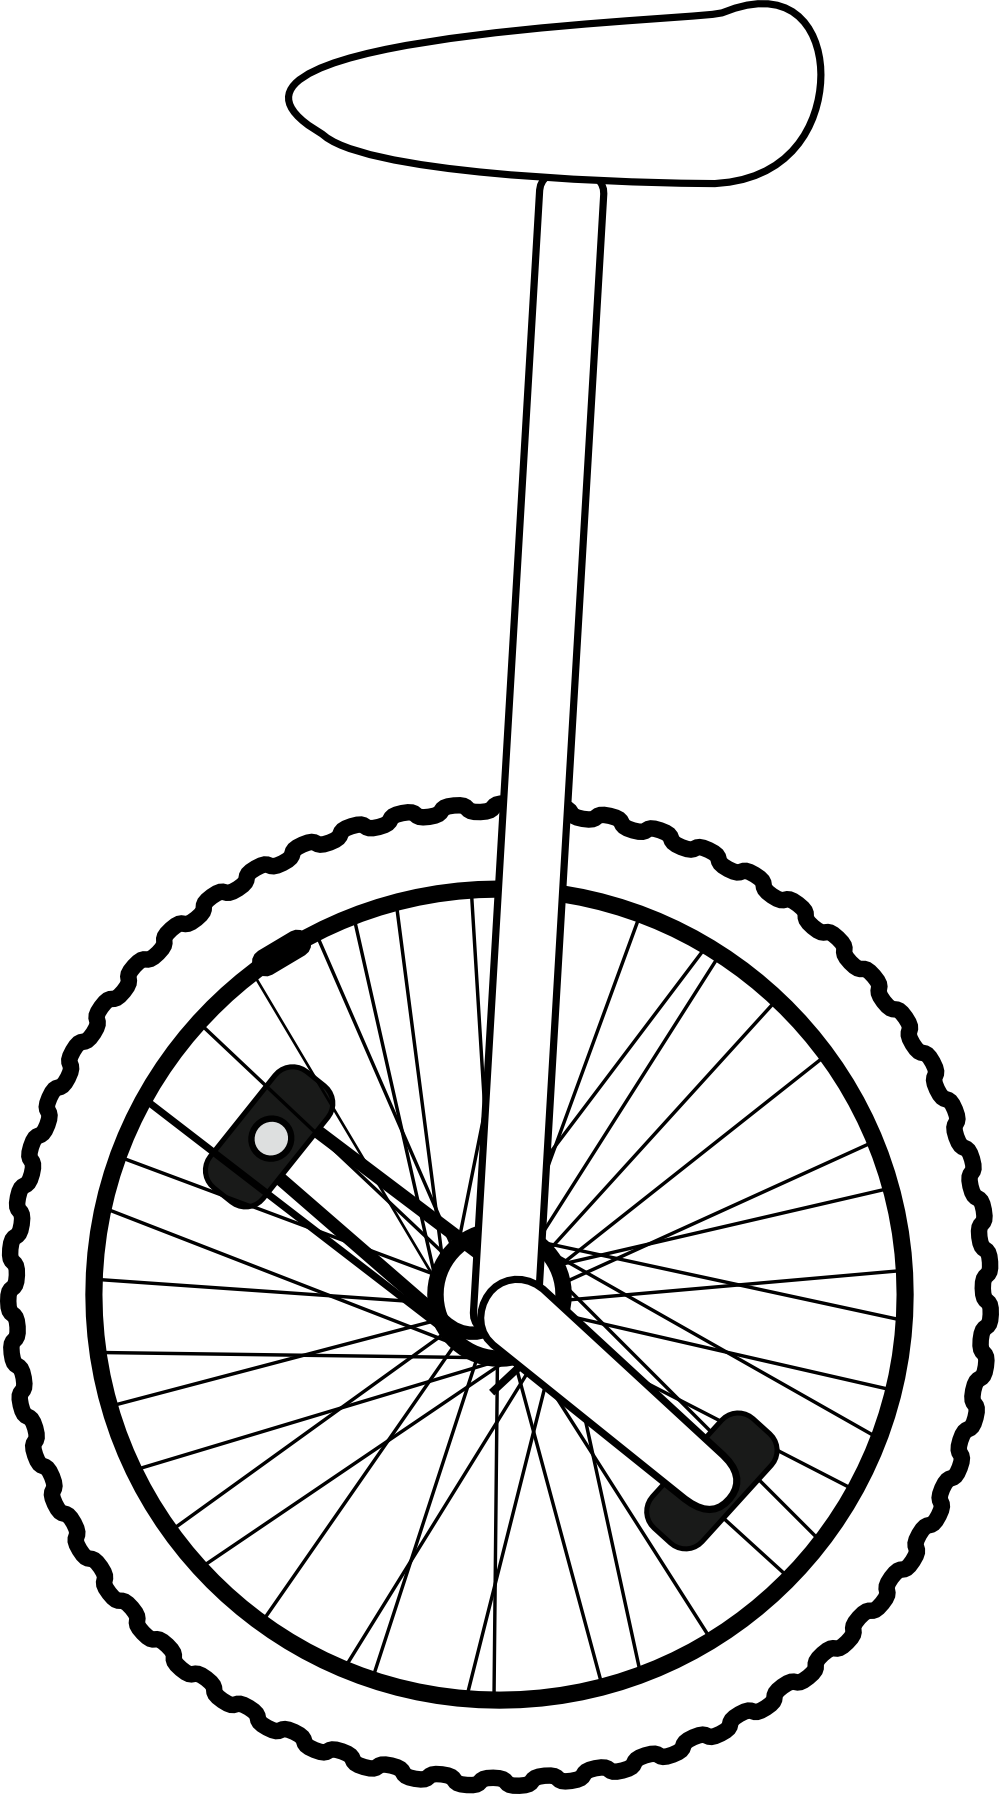 banner freeuse Unicycle panda free images. Wheel black and white clipart.